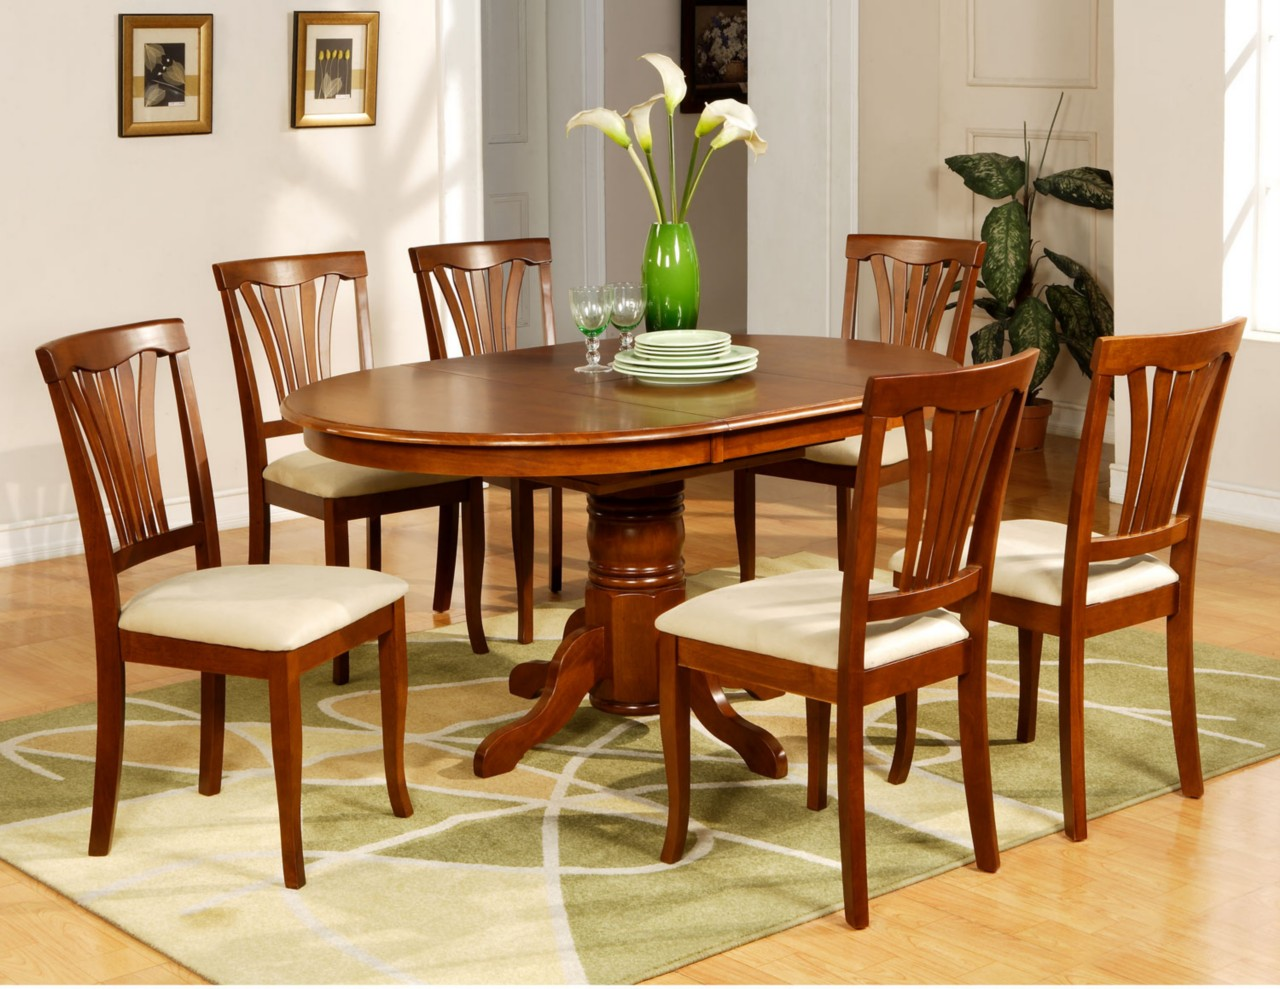 Kitchen Tables With Chairs 7 Pc Avon Oval Dinette Kitchen Dining Room Table With 6